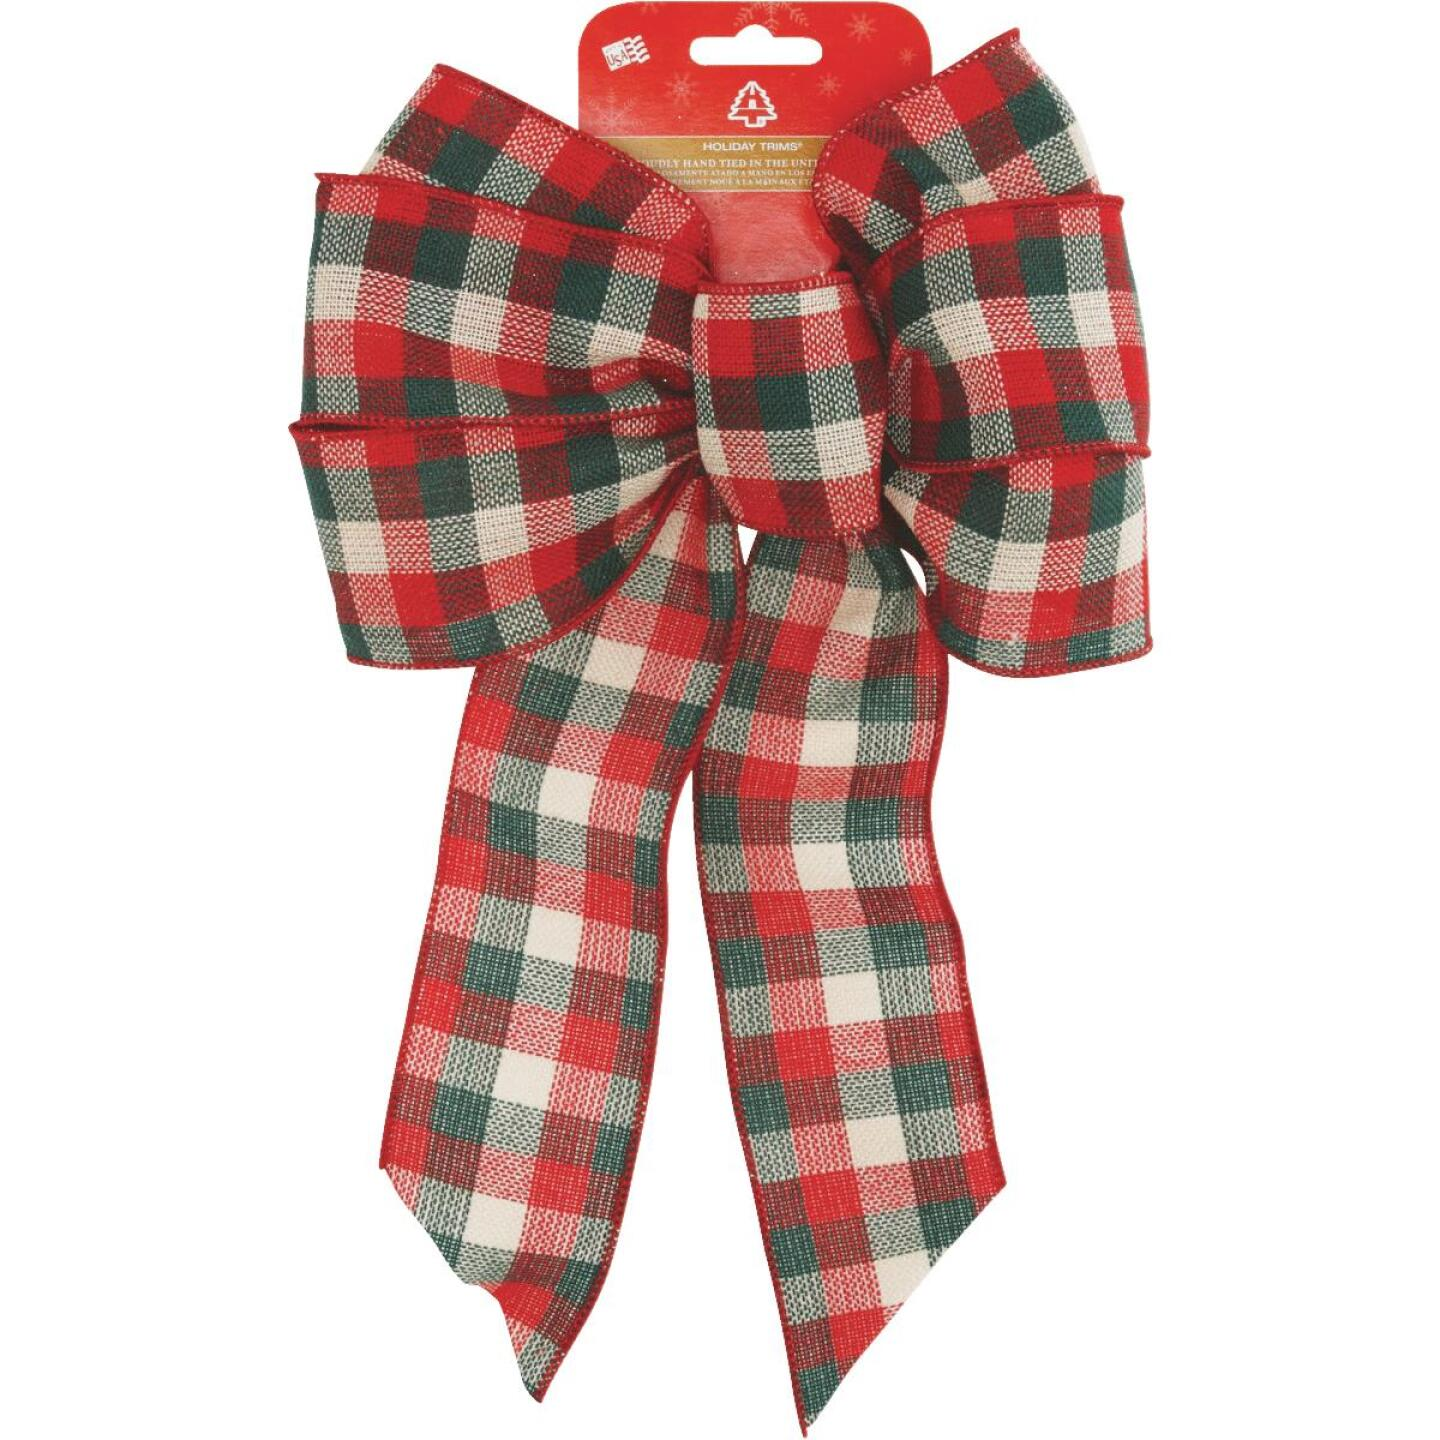 Holiday Trims 7-Loop 8-1/2 In. W. x 14 In. L. Assorted Plaid Fabric Christmas Bow Image 4